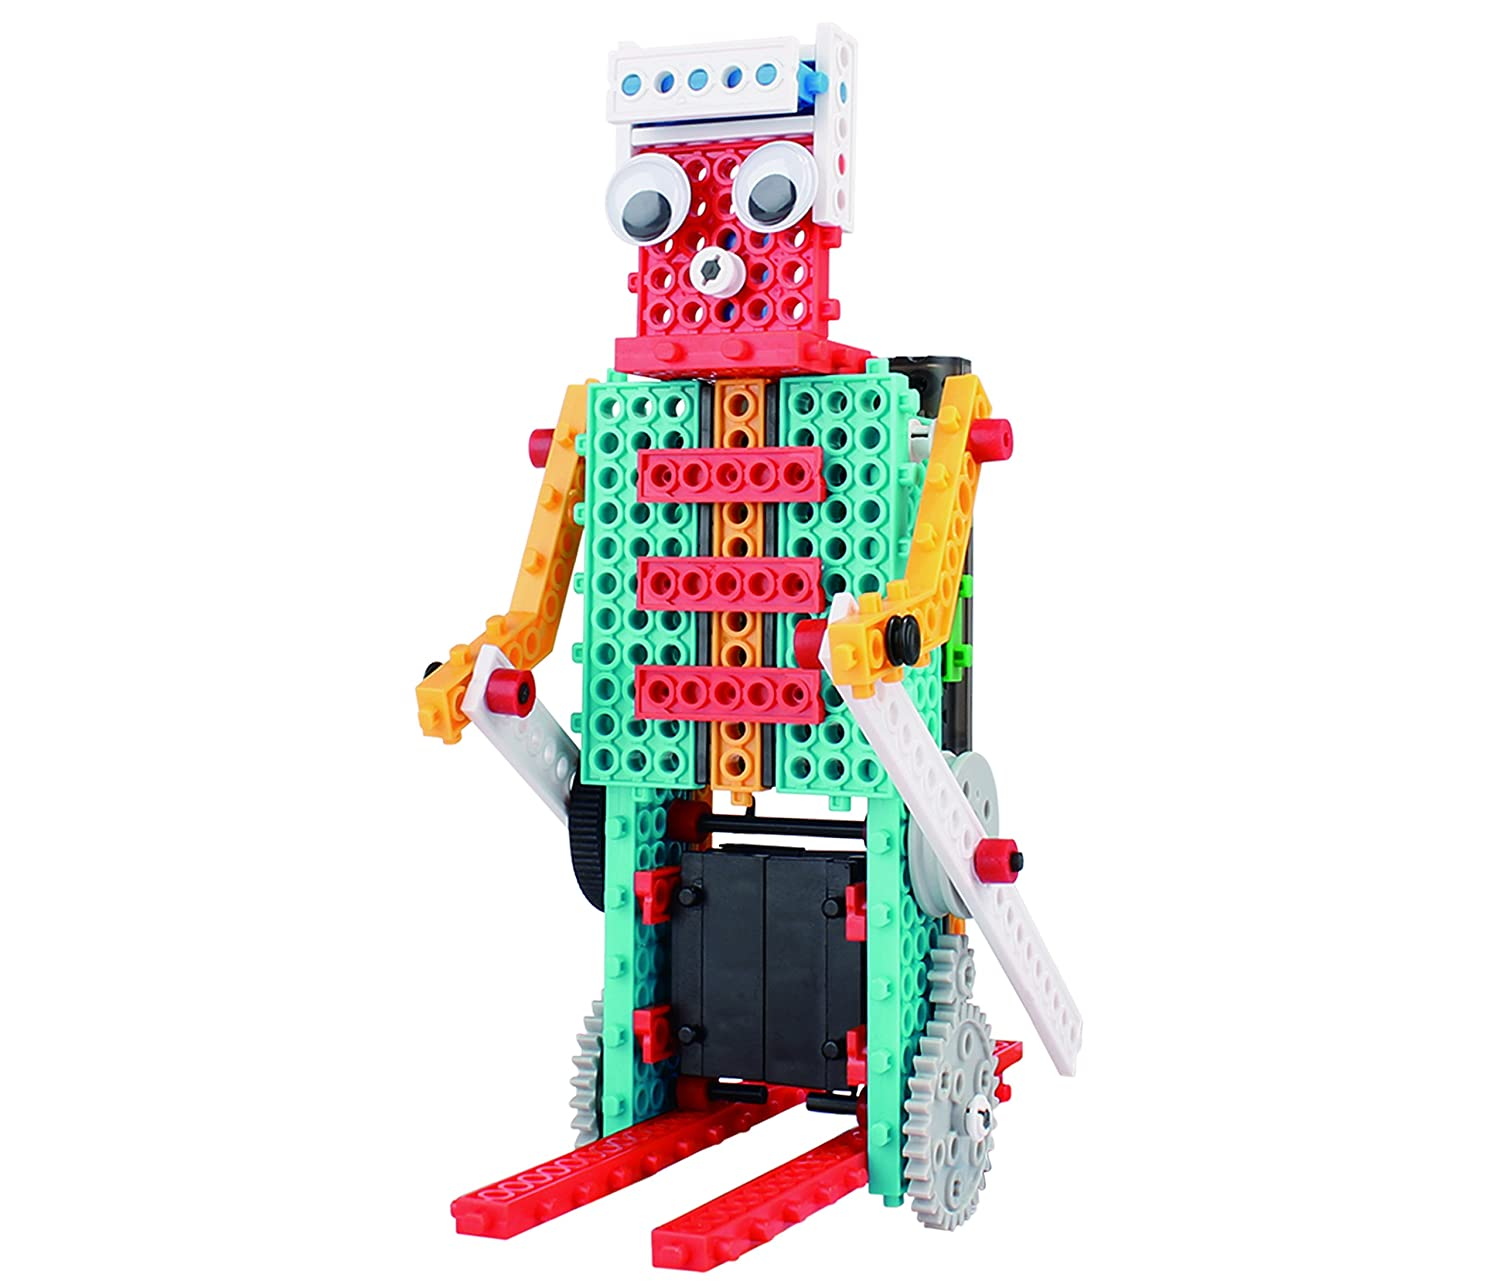 Amazon Robot Kit For Kids Ingenious Machines Build Your Own